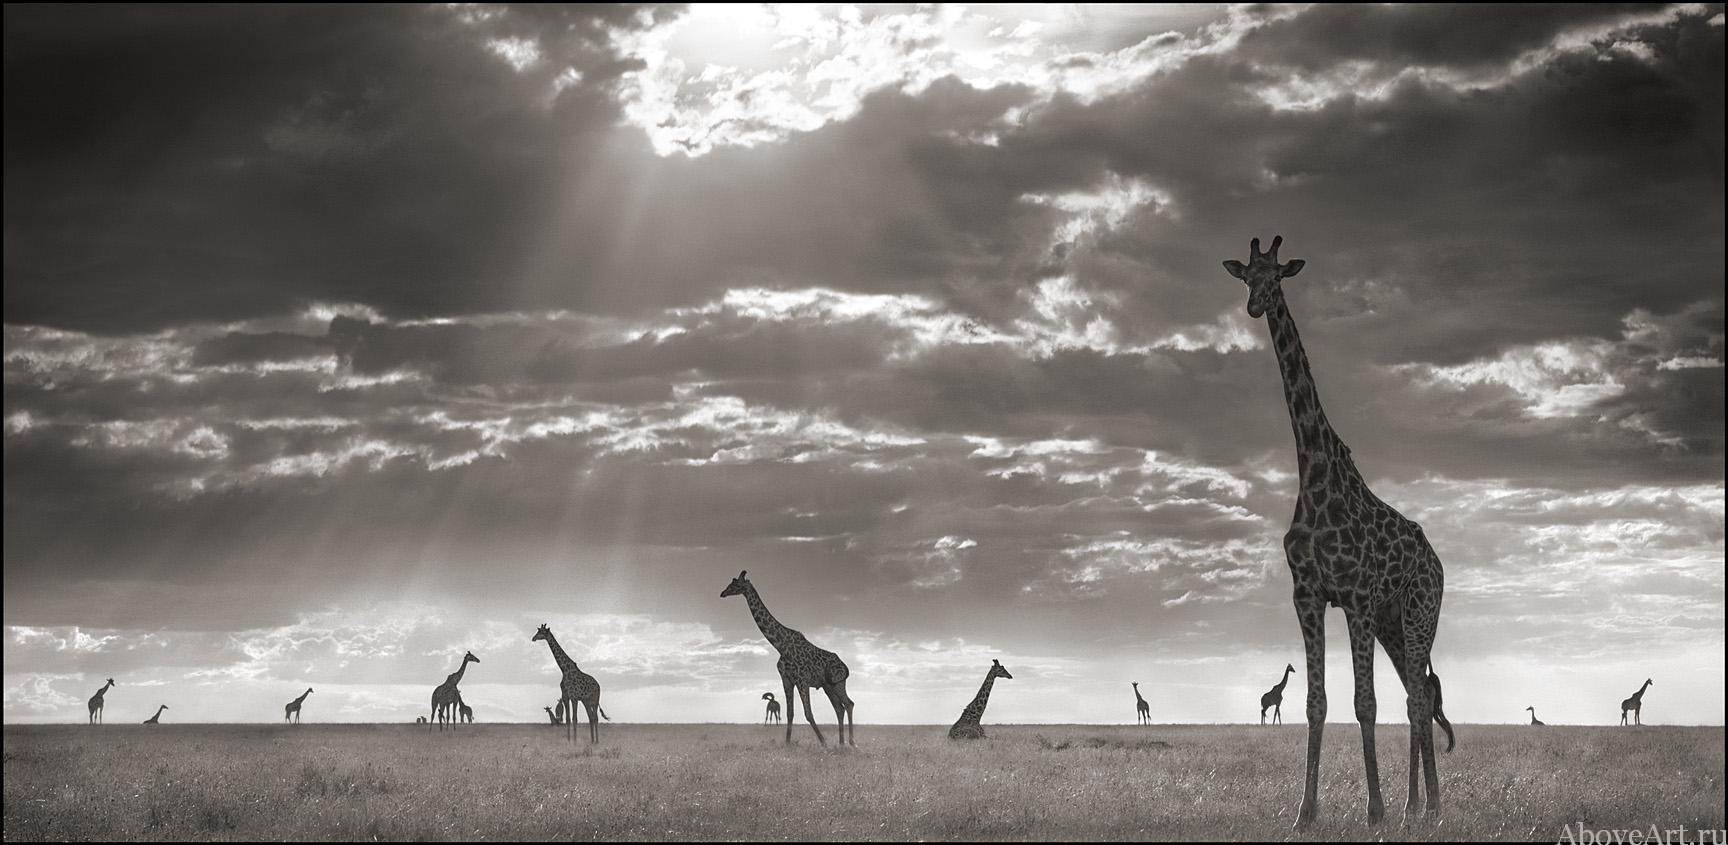 Giraffe black and white wallpaper